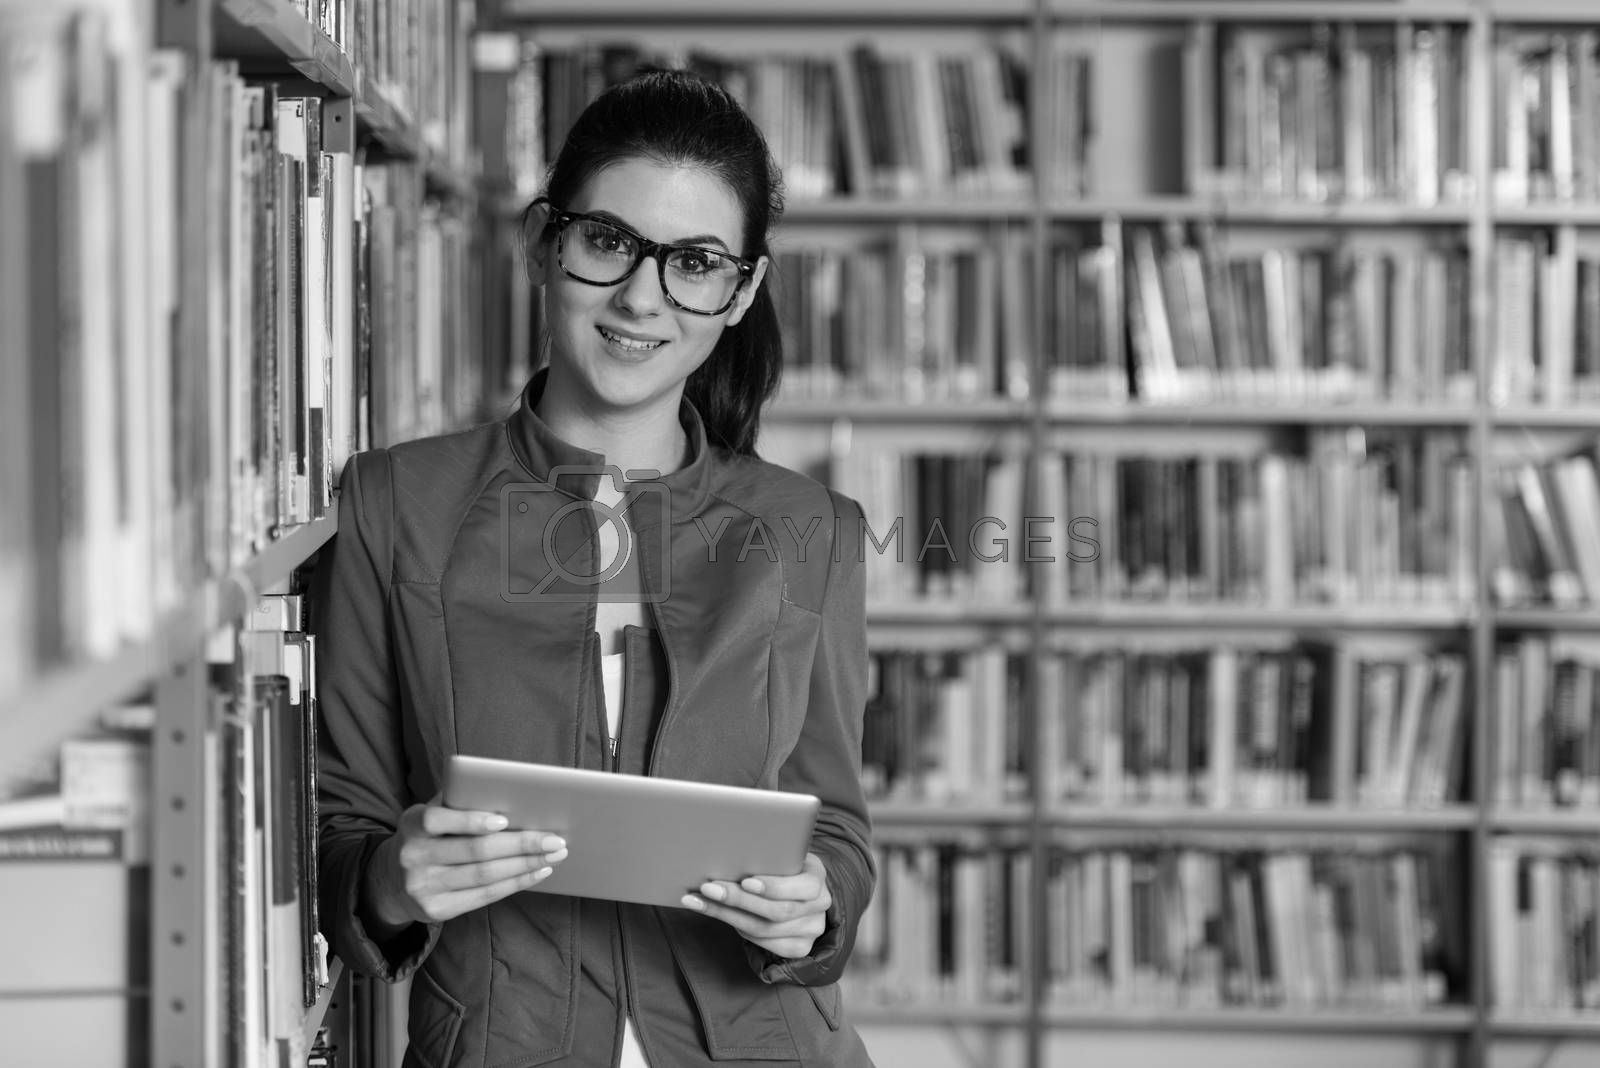 In The Library - Pretty Female Student With Tablet And Books Working In A High School - University Library - Shallow Depth Of Field